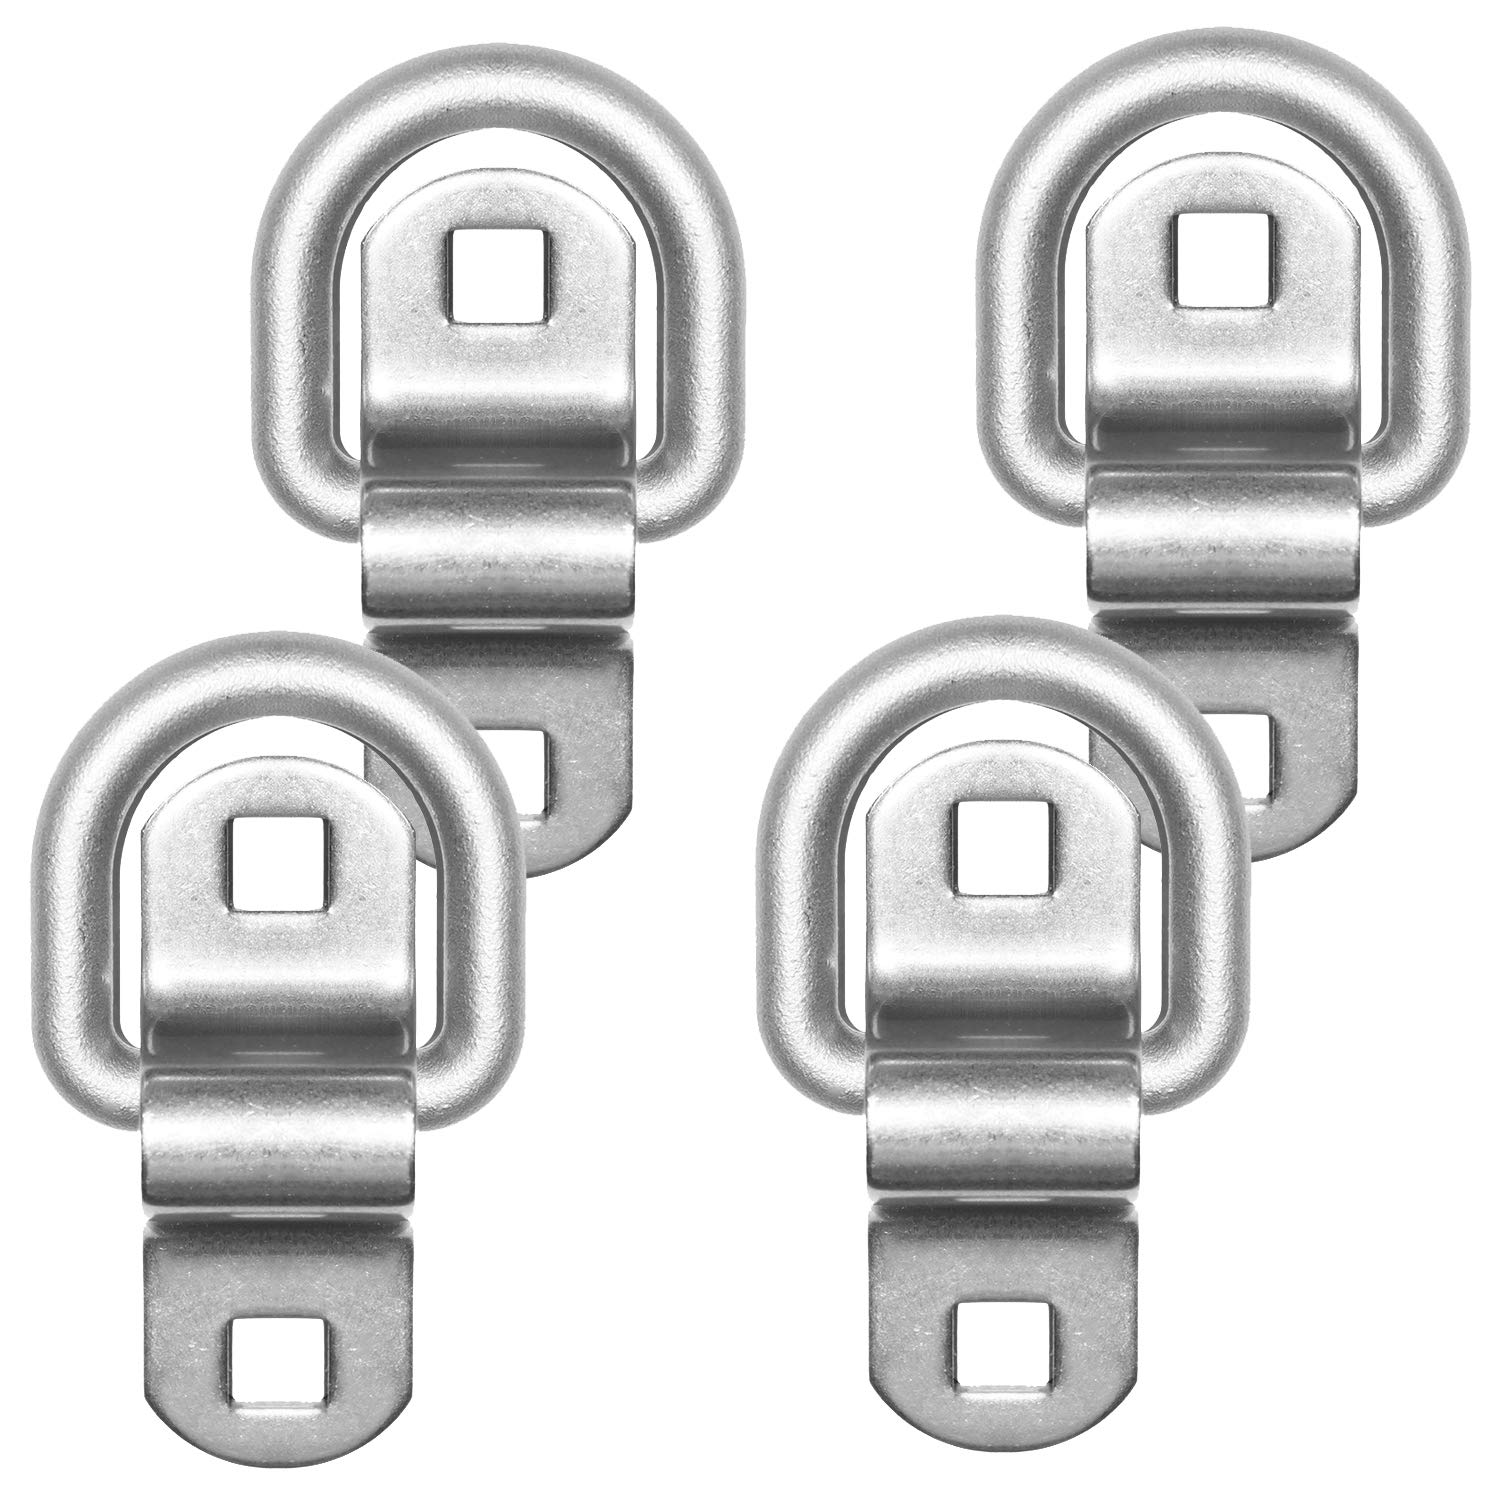 Cap Surface Mount D-Ring 6,000 lb Tiedowns 4-Pack Stainless Steel Tie Down